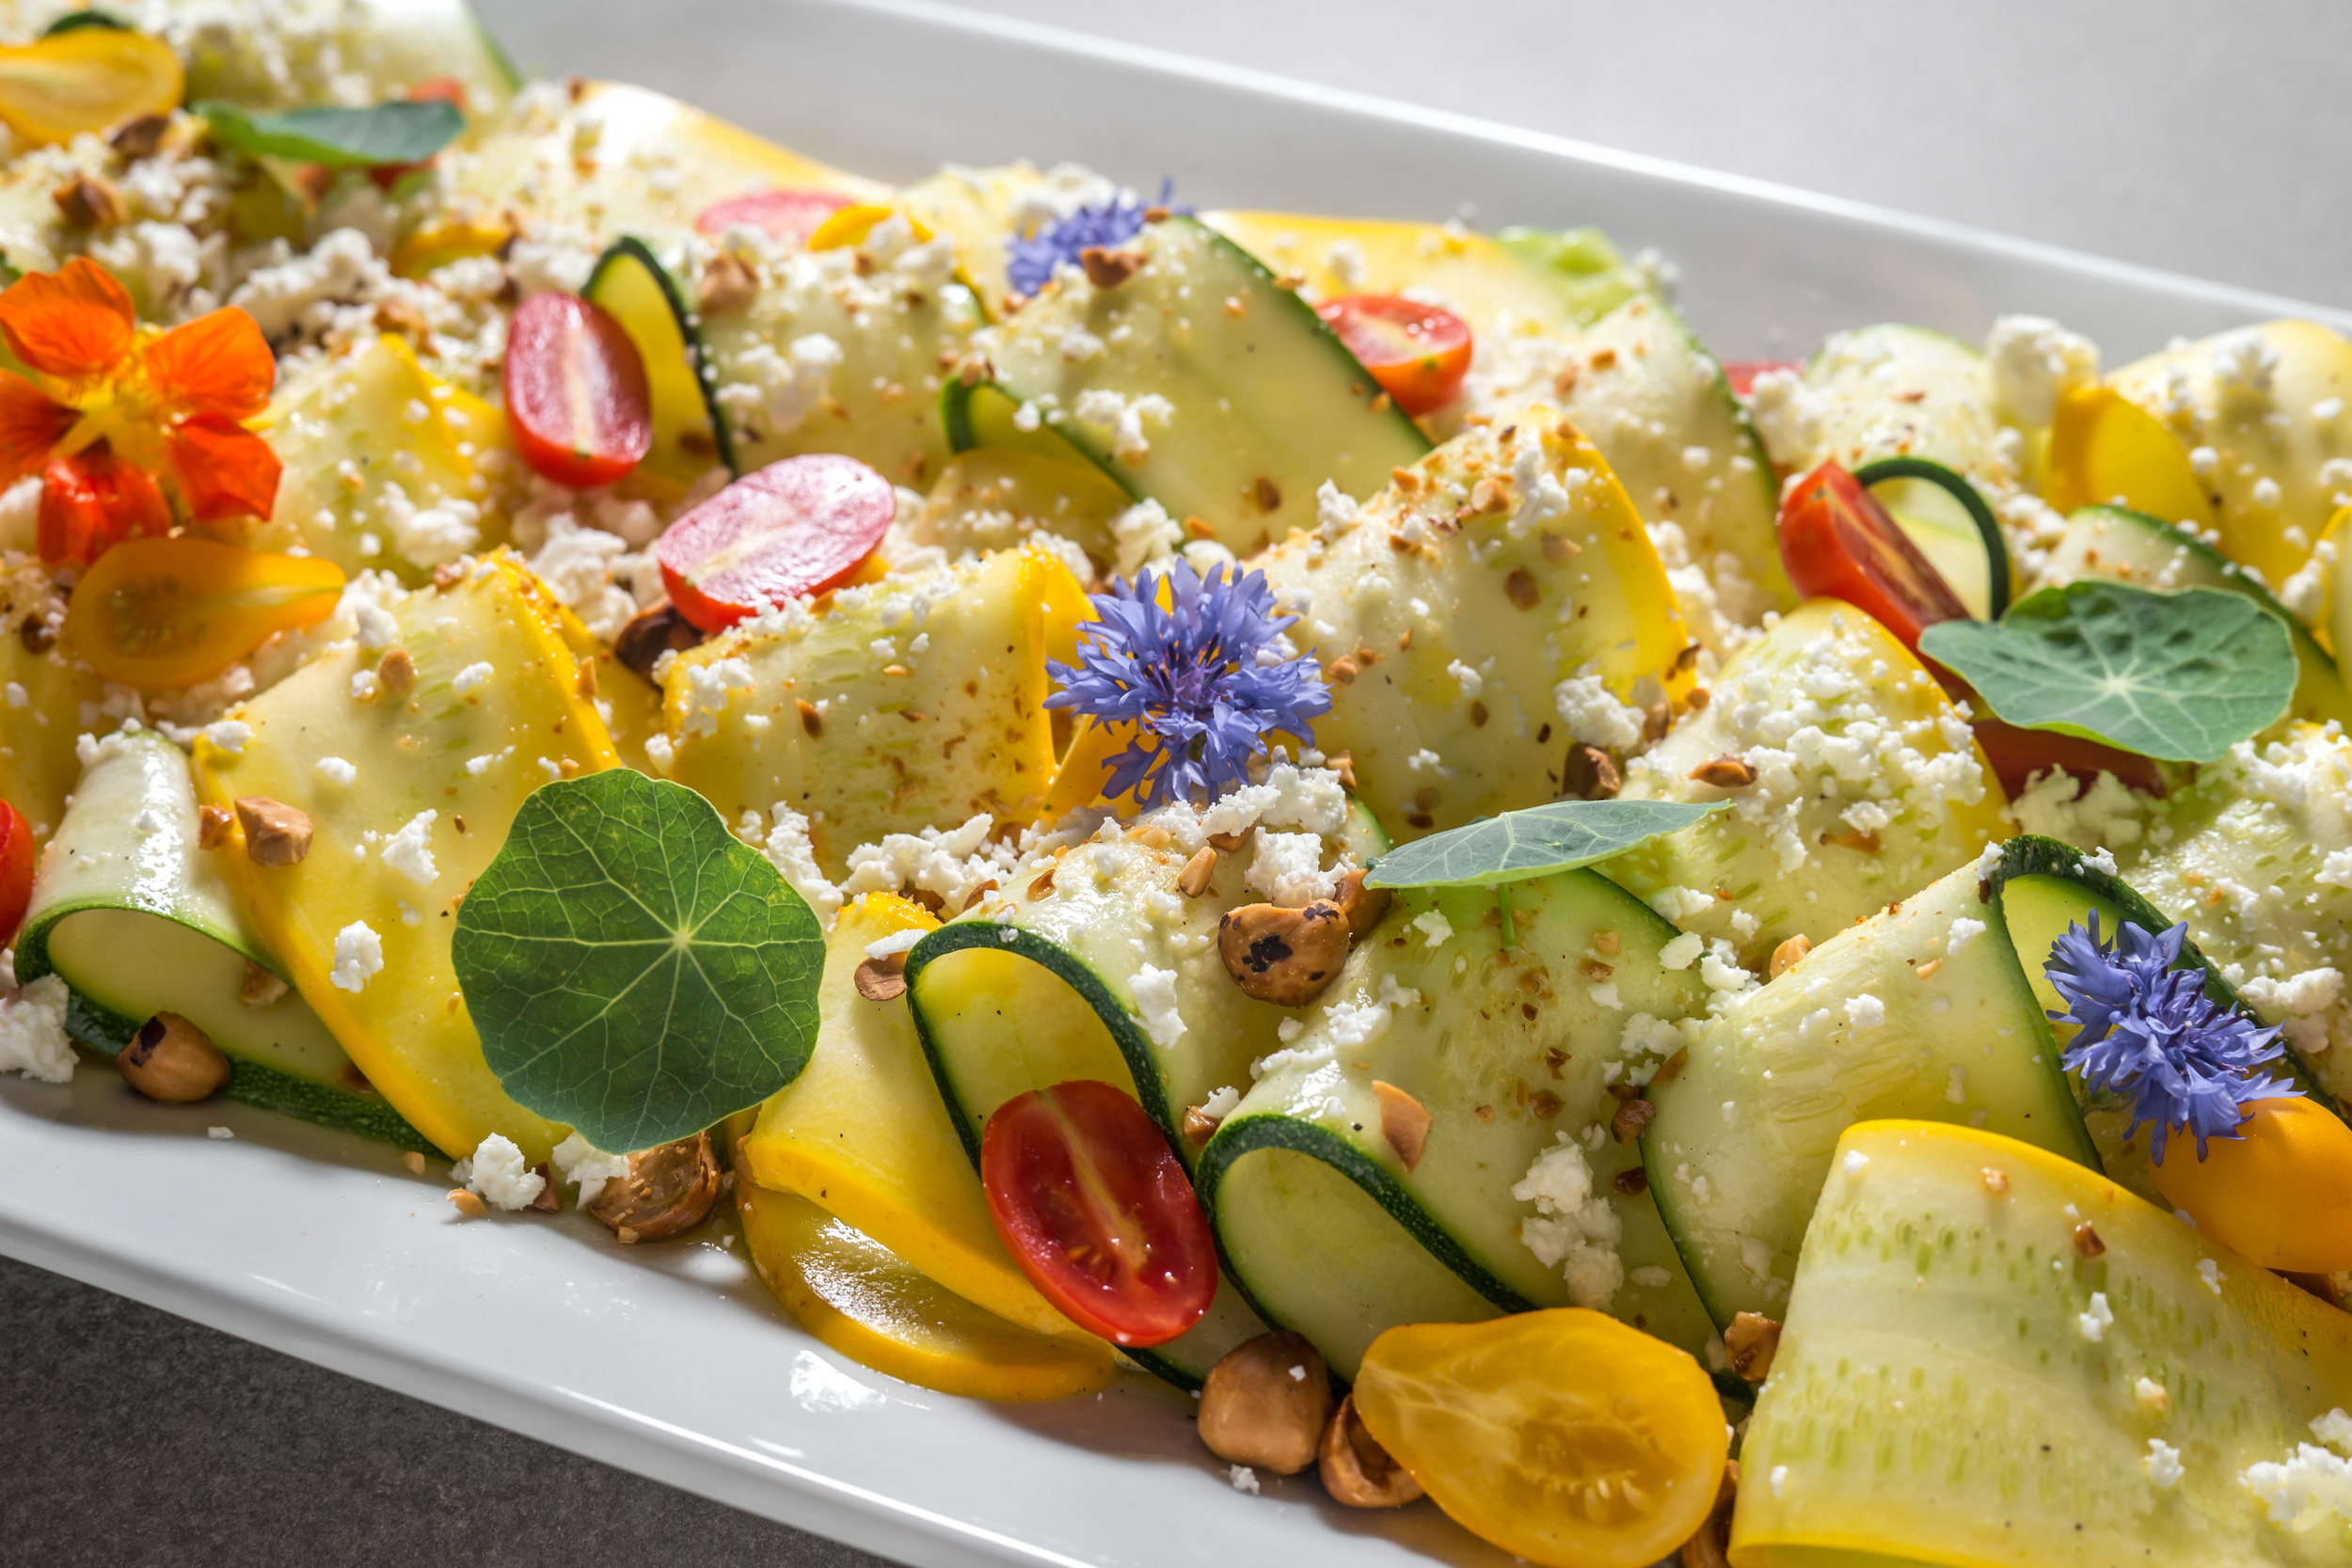 Summer squash salad with feta and hazelnuts